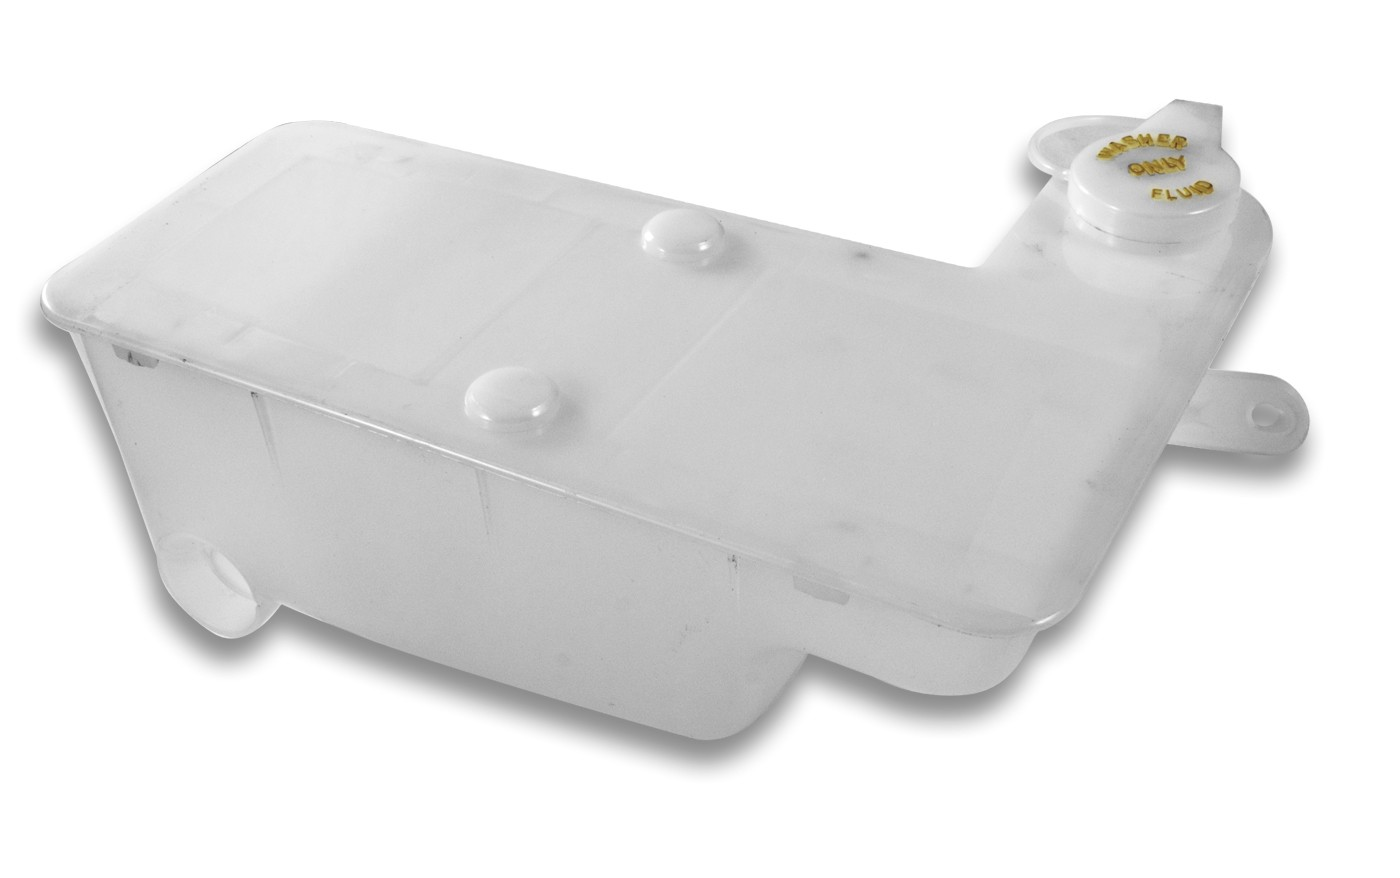 Windshield Replacement Come To You >> 1986-1997 Ford Mustang Windshield Washer Reservoir Housing Tank w/ Cap - Engine Compartment ...